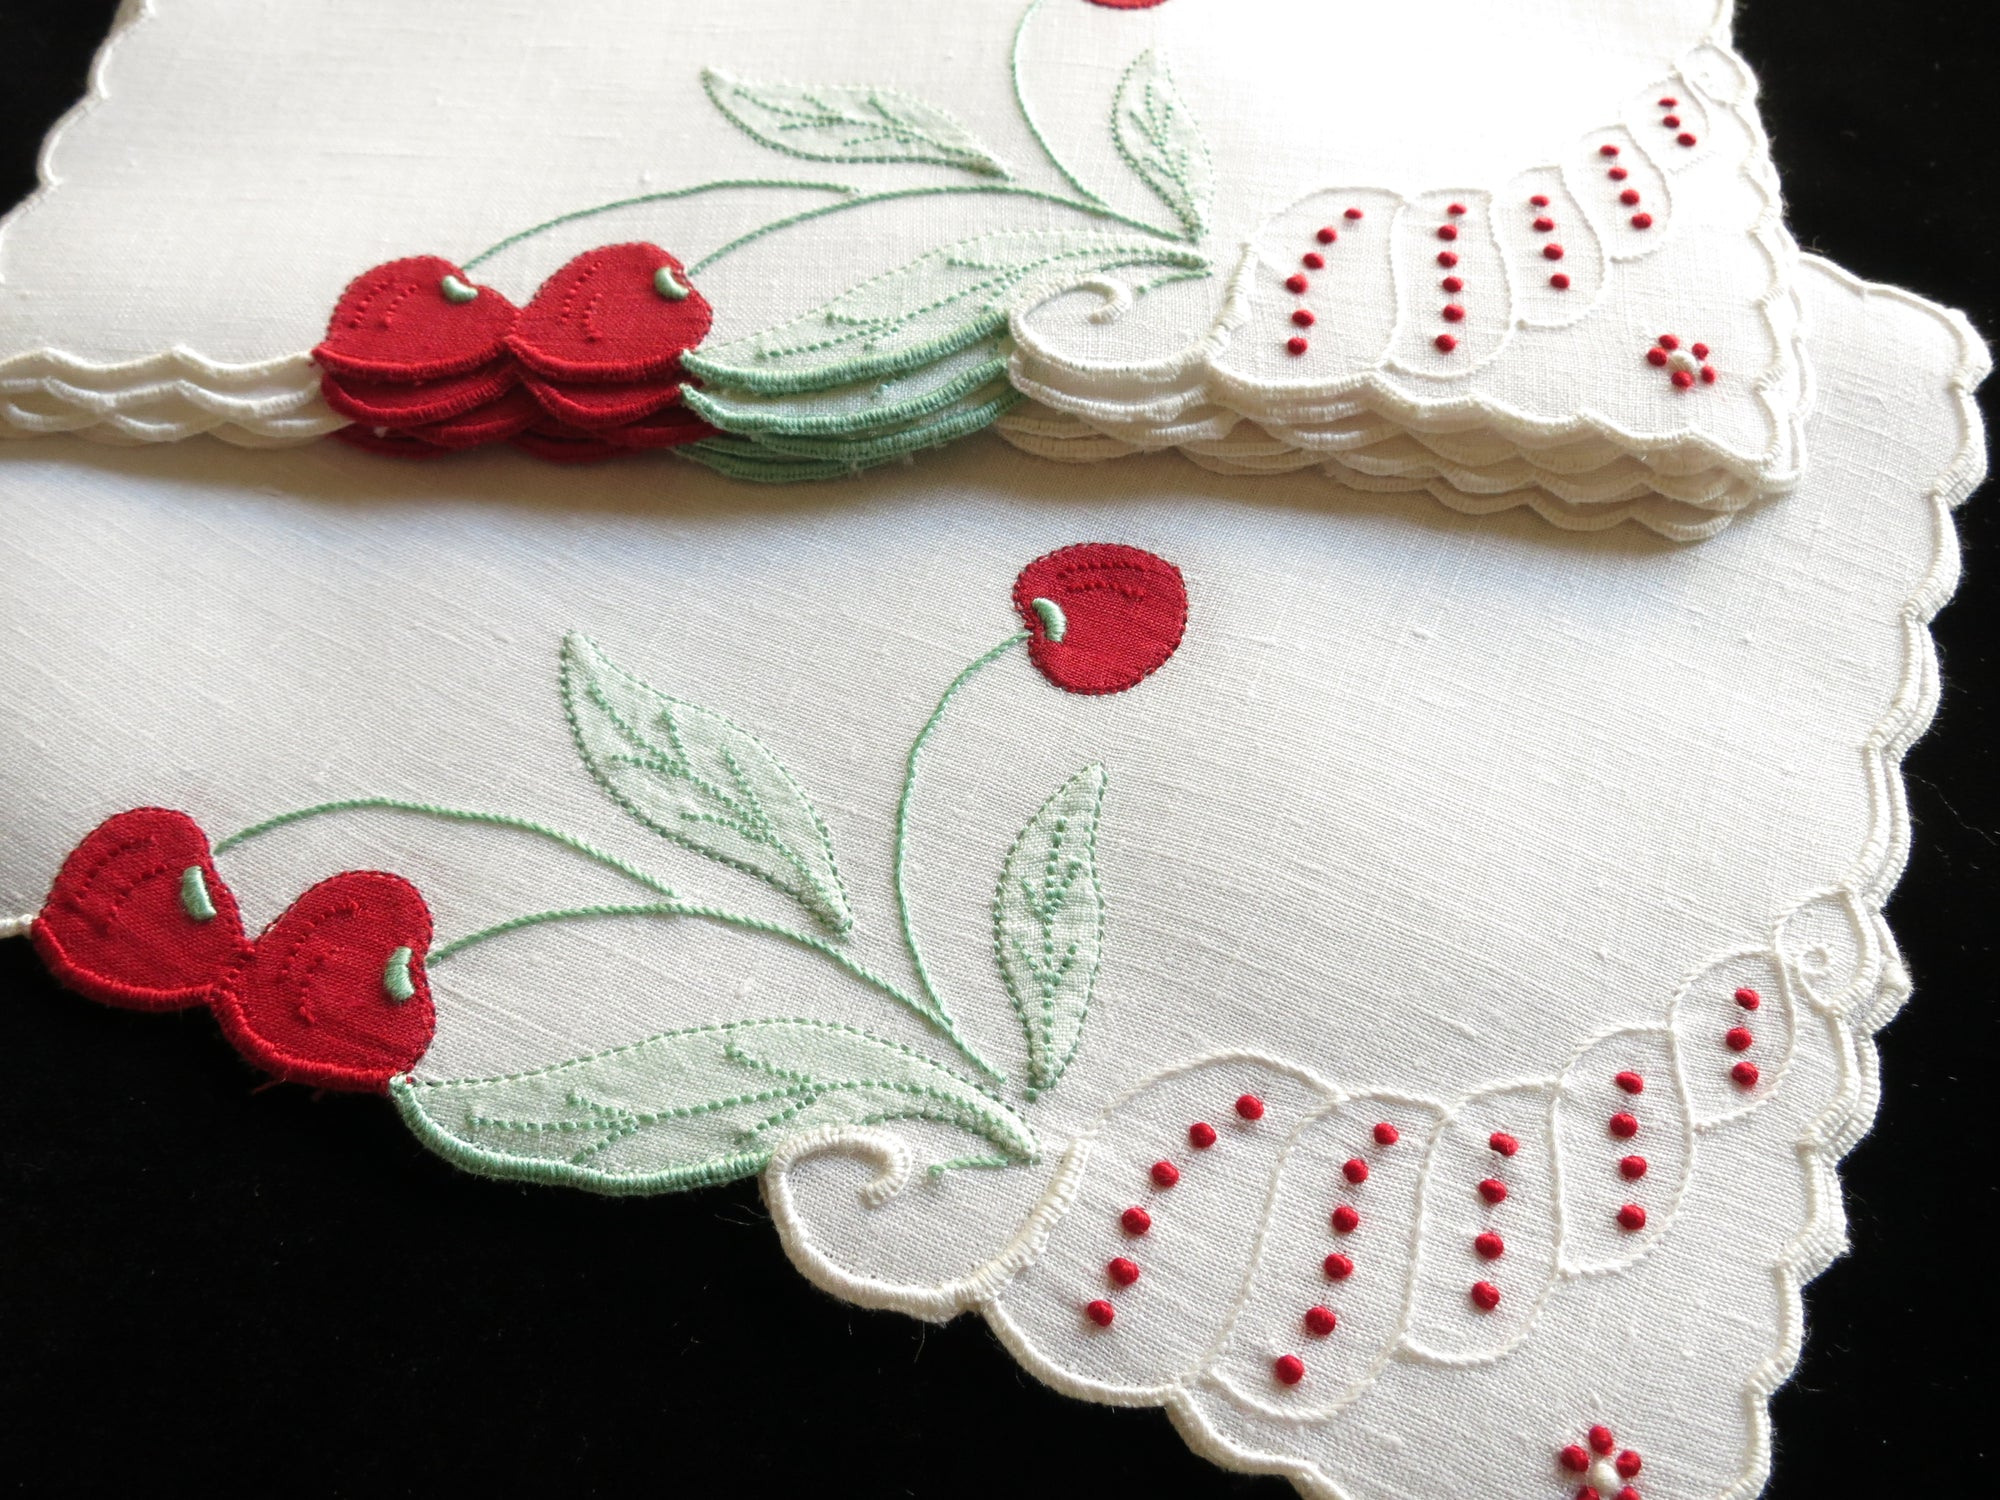 Bounty of Cherries, Vintage Madeira Embroidered Cocktail Napkins - Set of 8